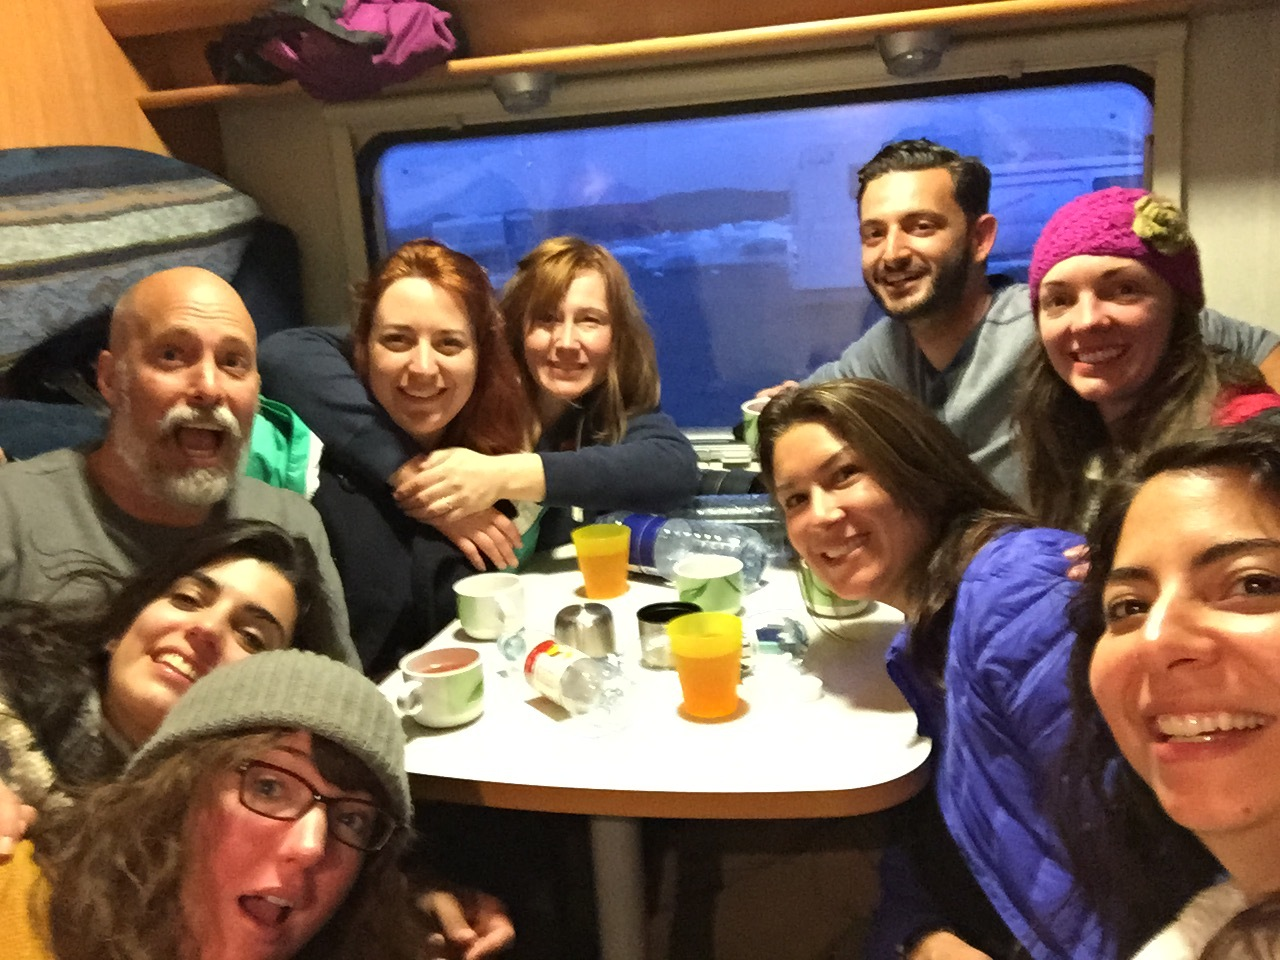 Late night drinks with the Fromagis in the RV's, surrounded by icebergs